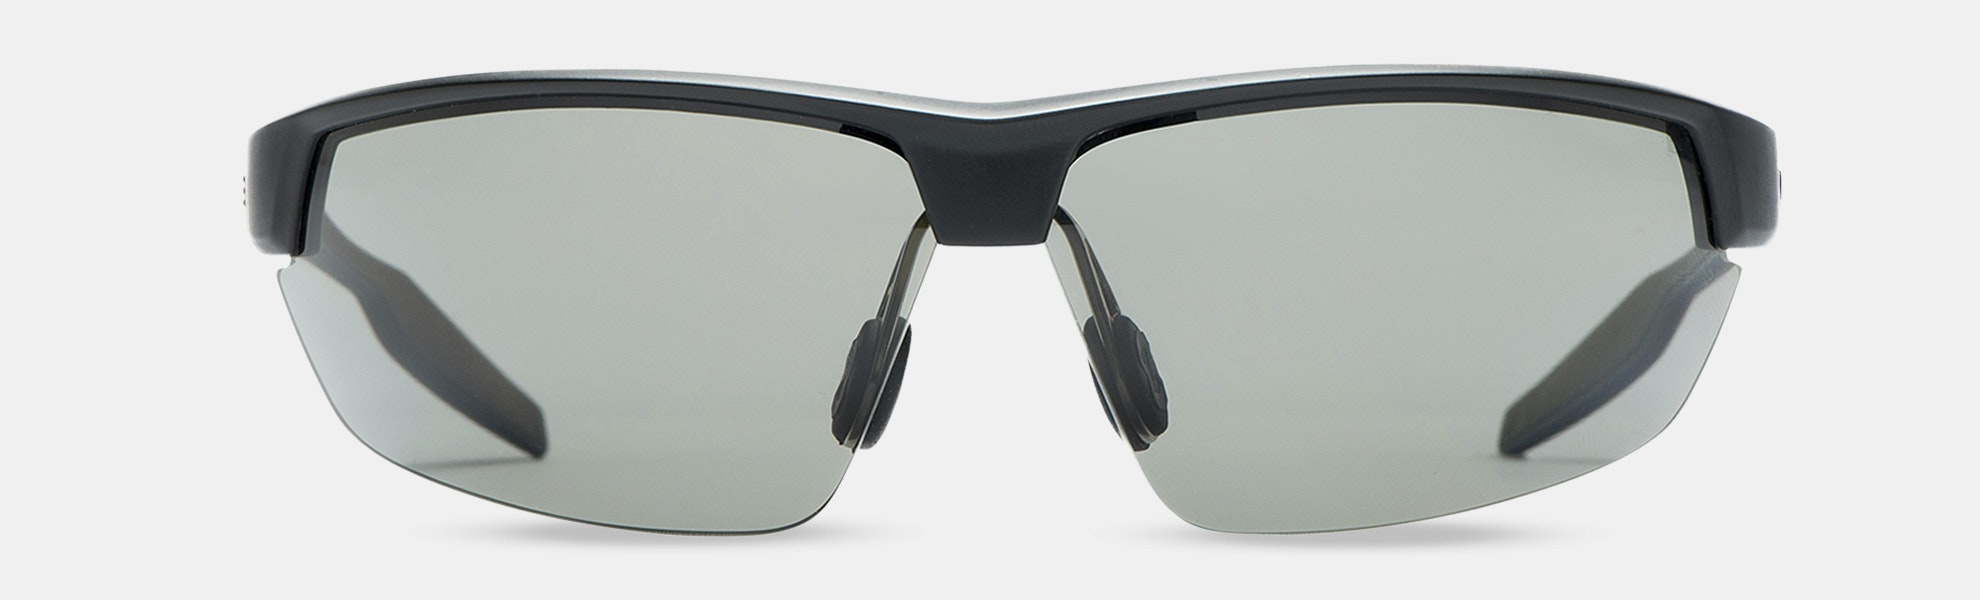 Native Eyewear Hardtop Ultra Polarized Sunglasses